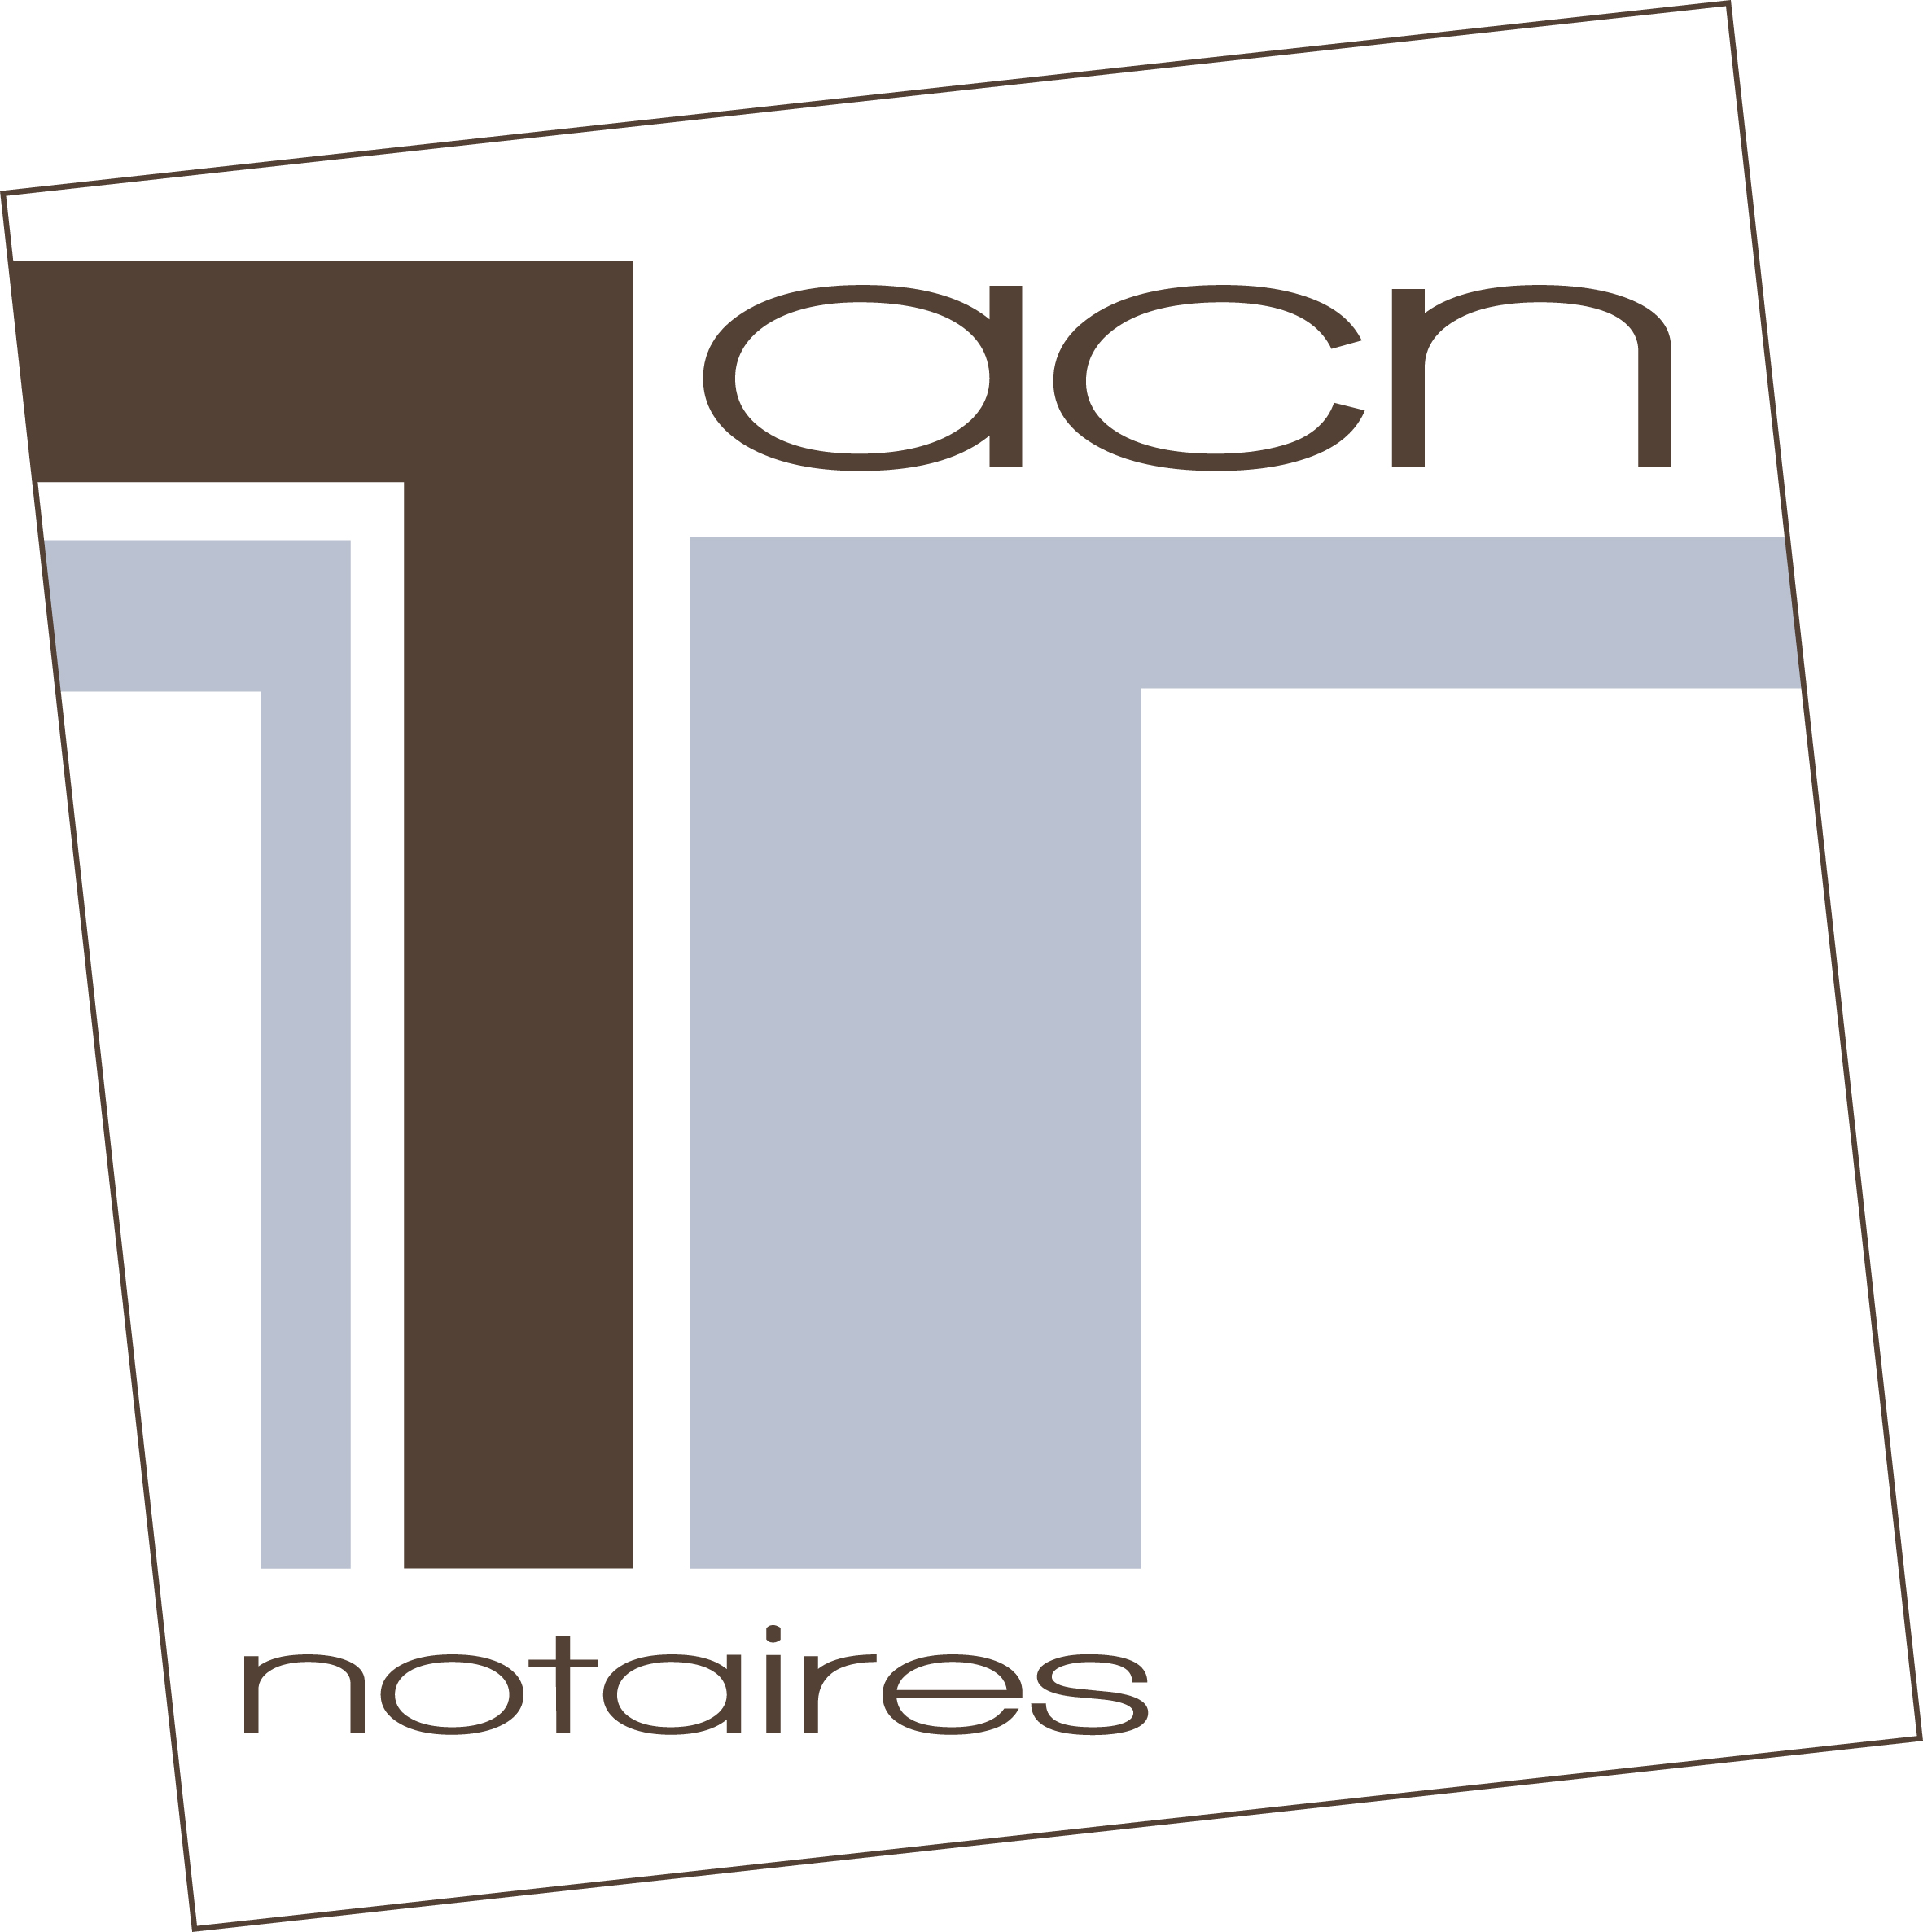 Office notarial acn notaires Taverny (logo) Maître Djourra Hamour